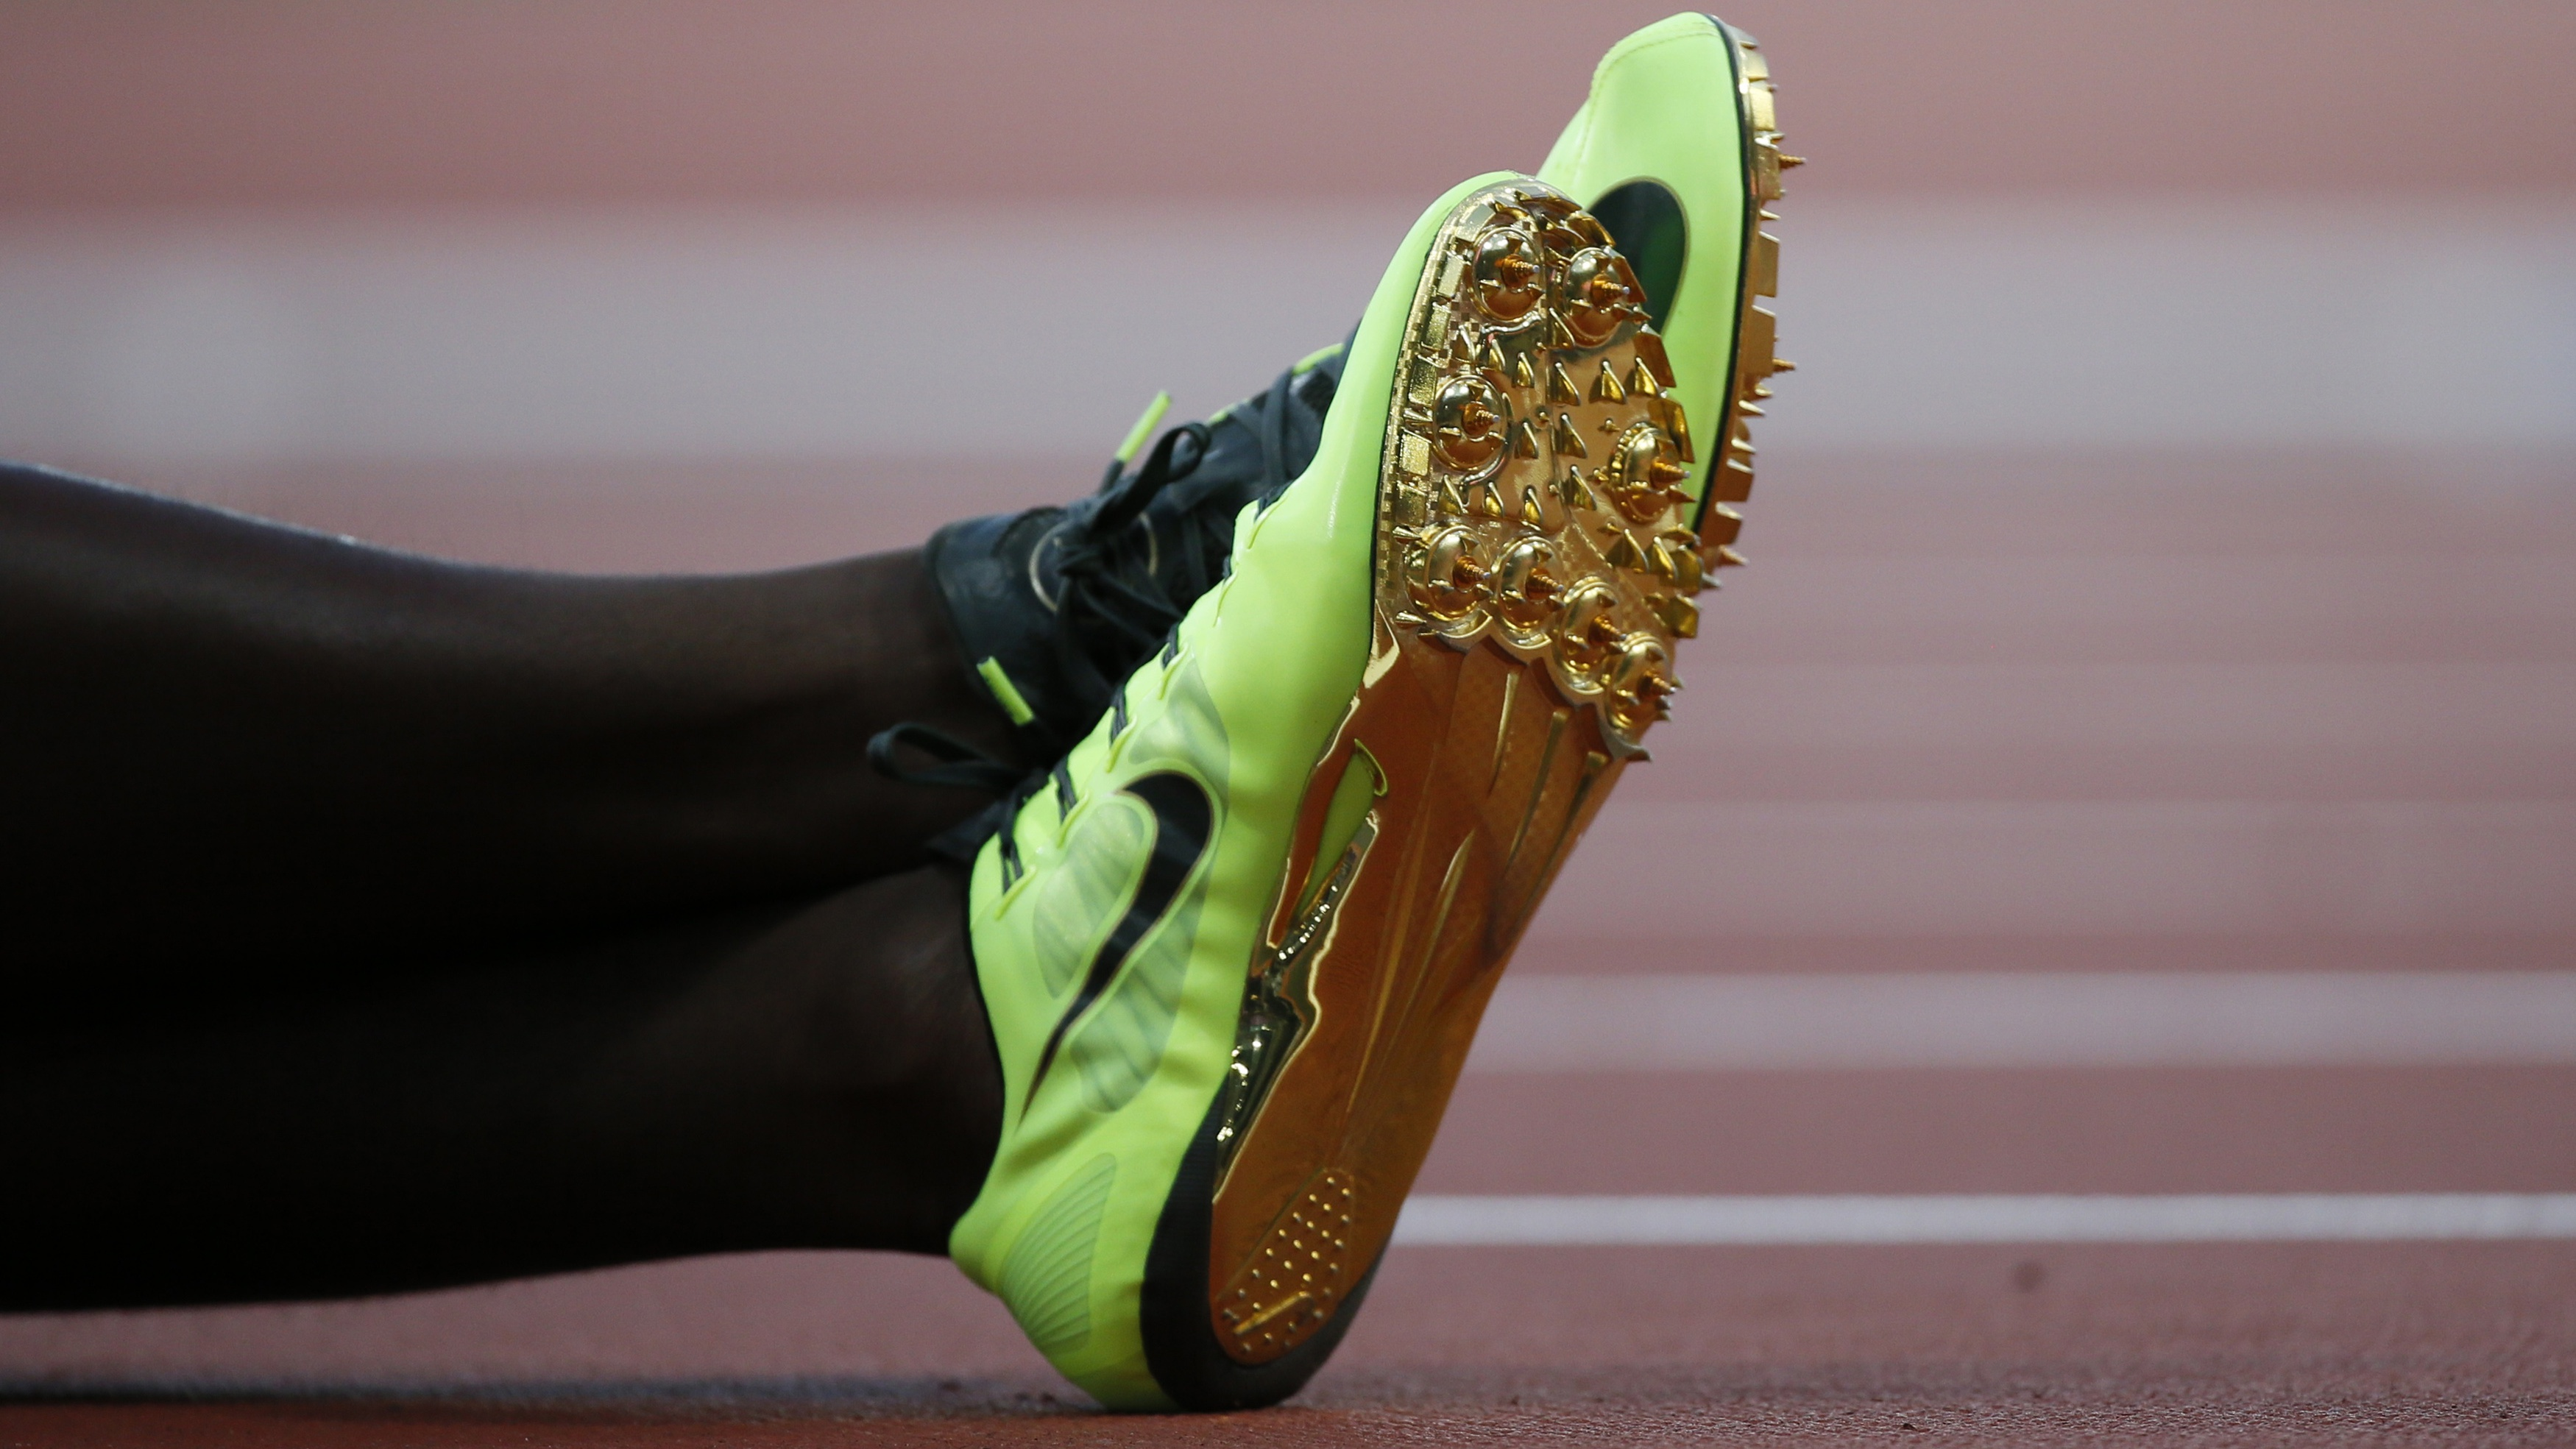 The shoes of Canada's Justyn Warner are seen during the men's 100m  semi-final during